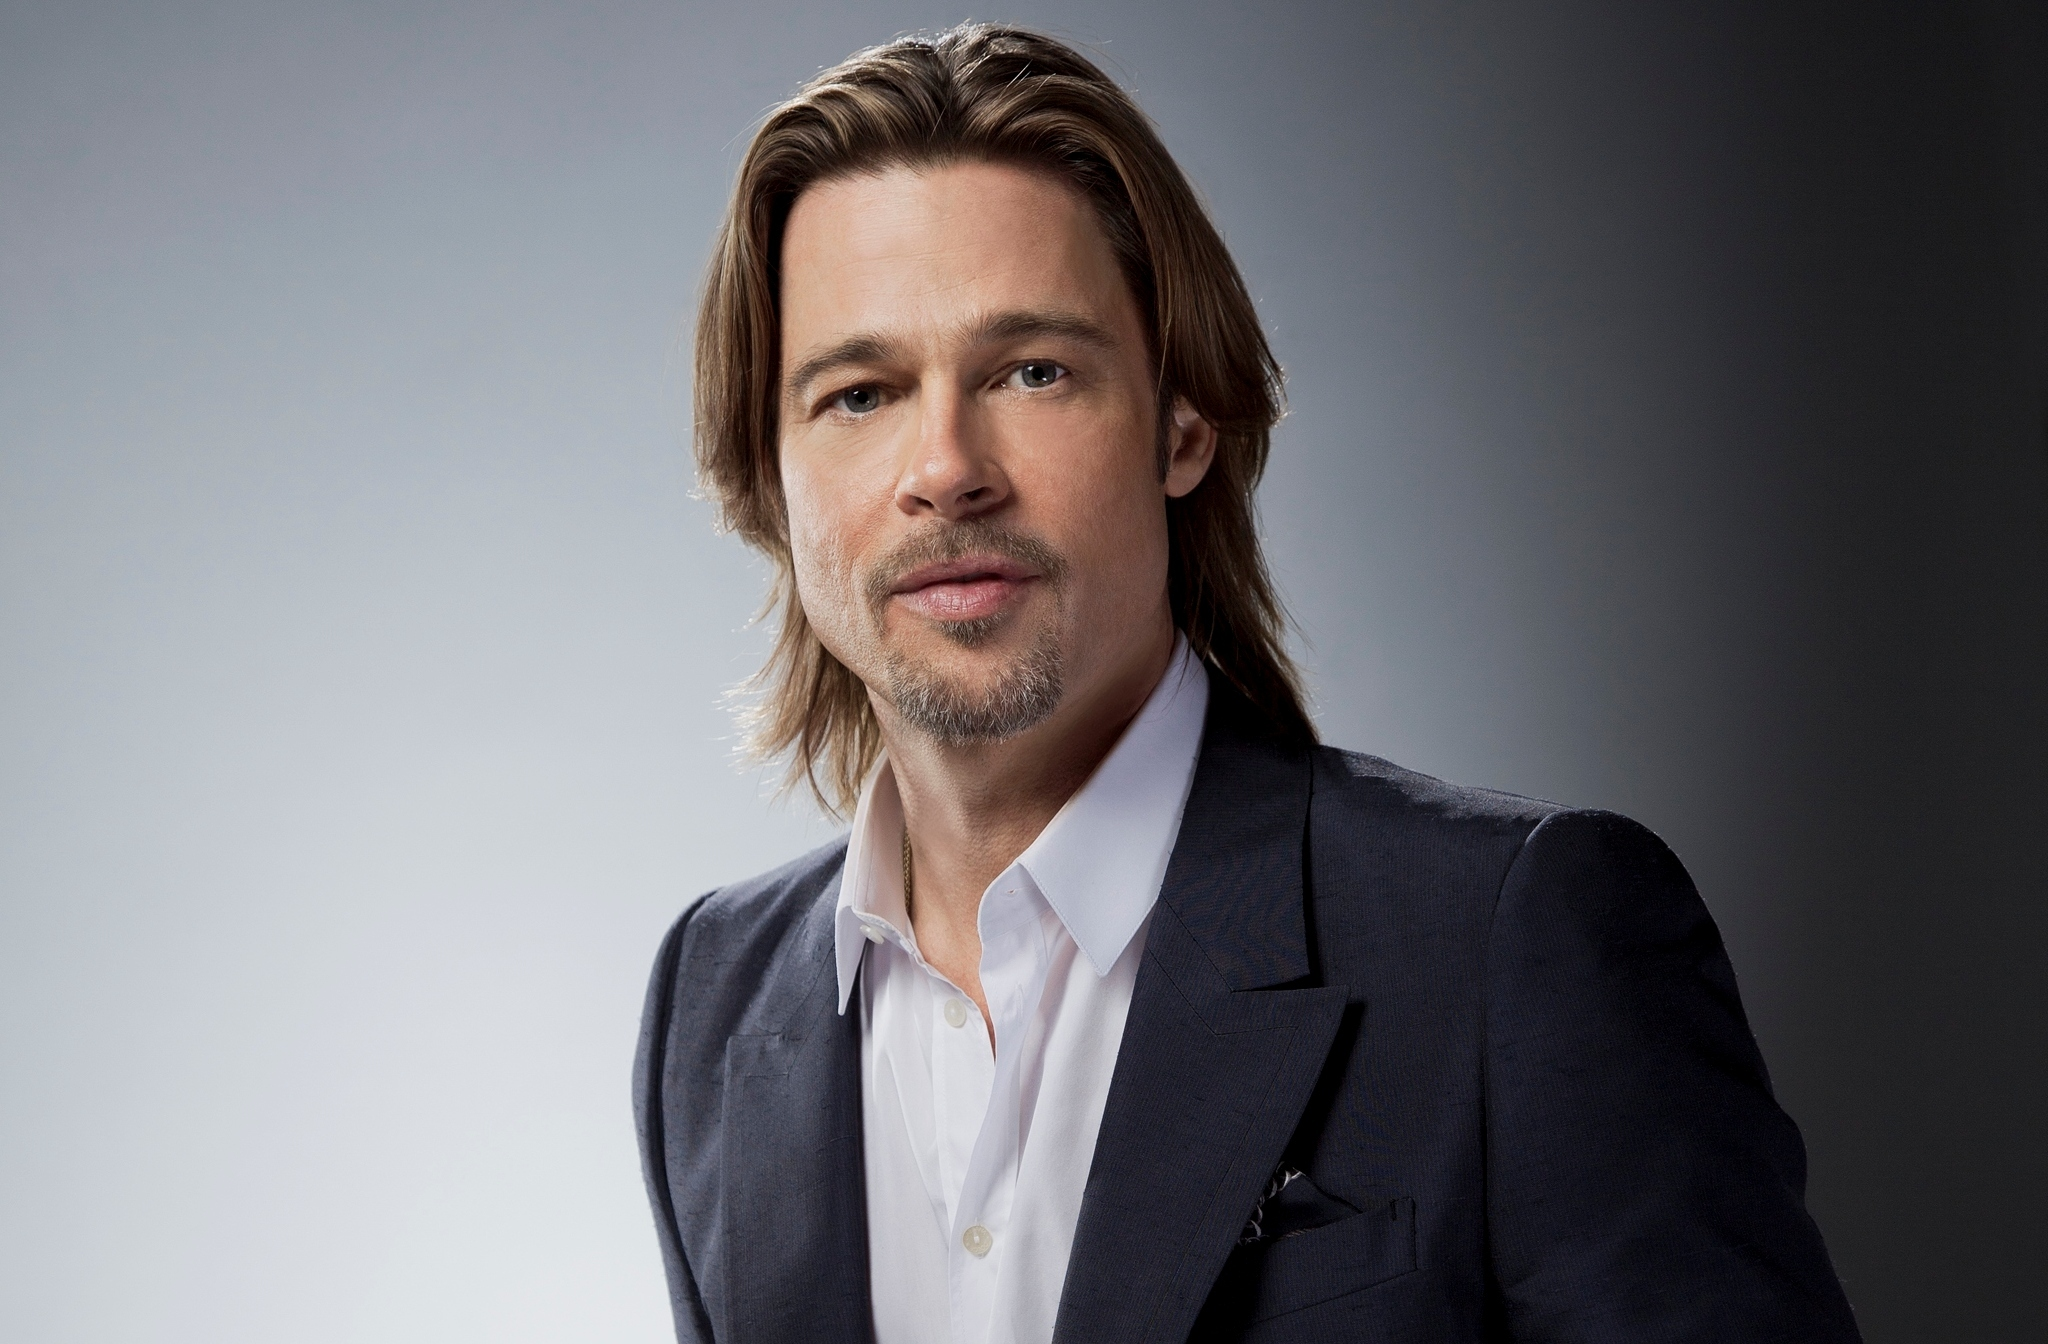 Brad Pitt Most Handsome Man 2017